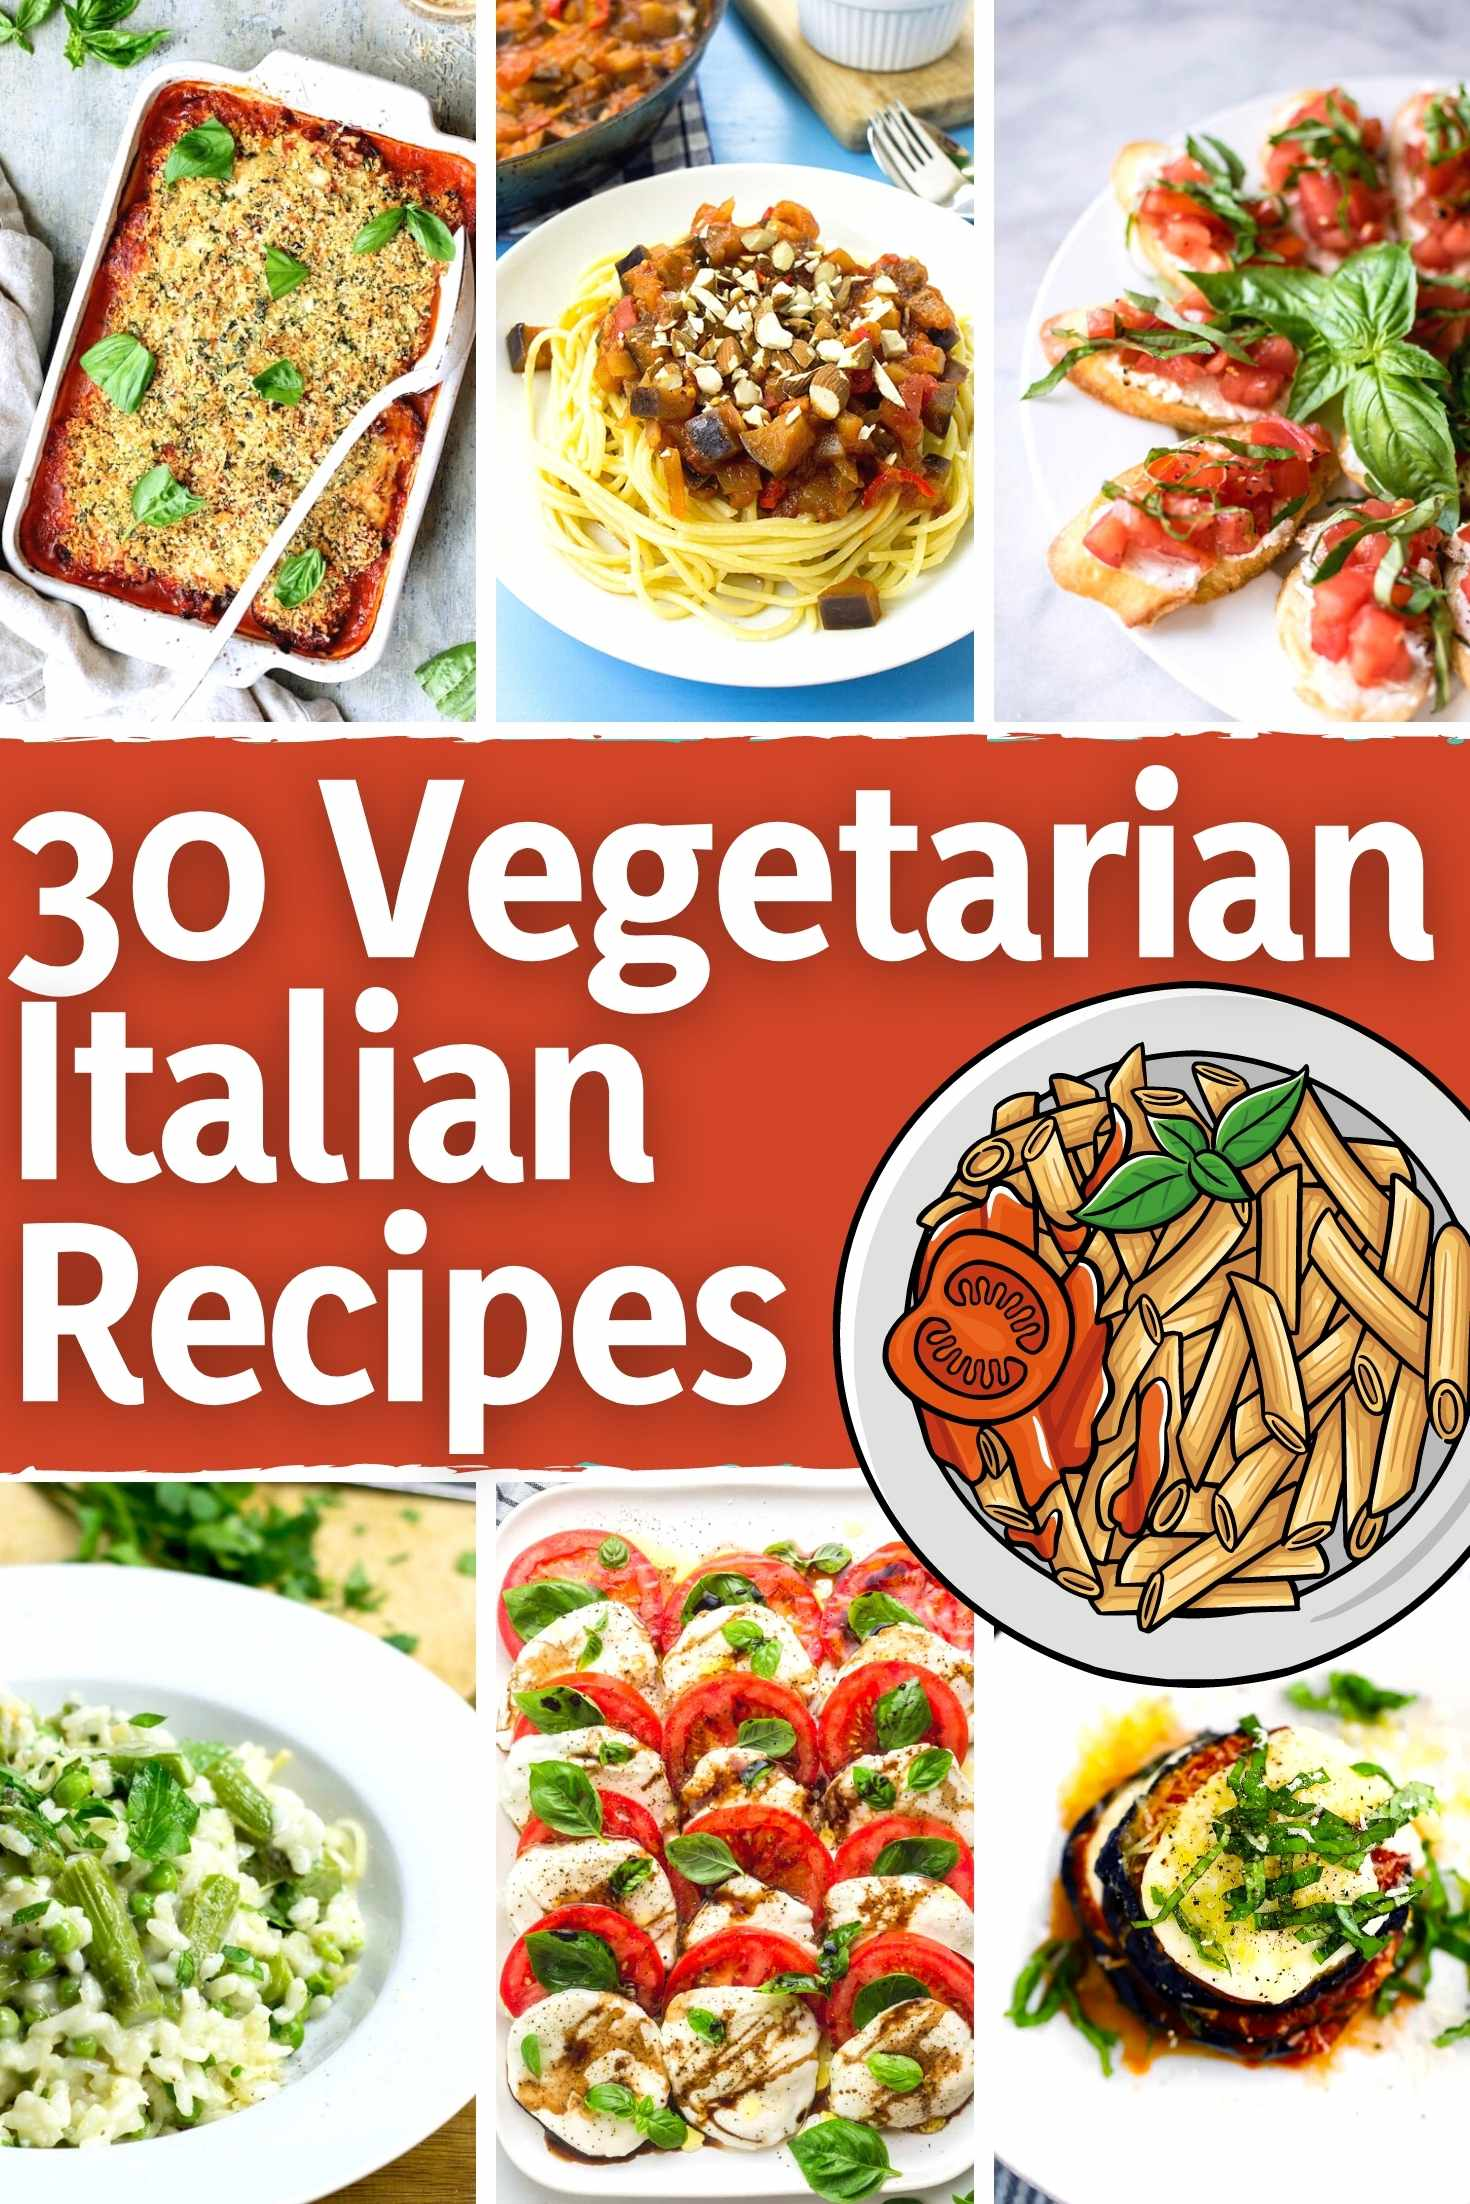 30 Vegetarian Italian Recipes - The Ultimate Comfort Food | Hurry The Food Up